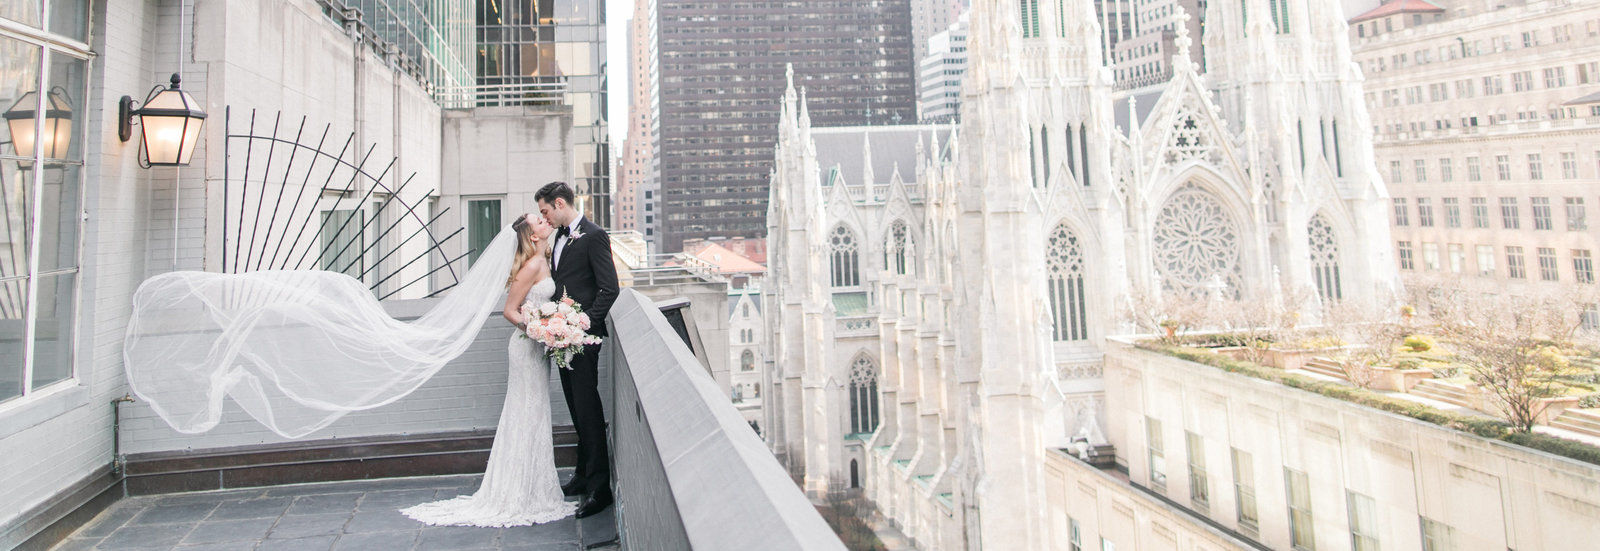 Amy Rizzuto Photography - NYC Wedding Photographer-3b